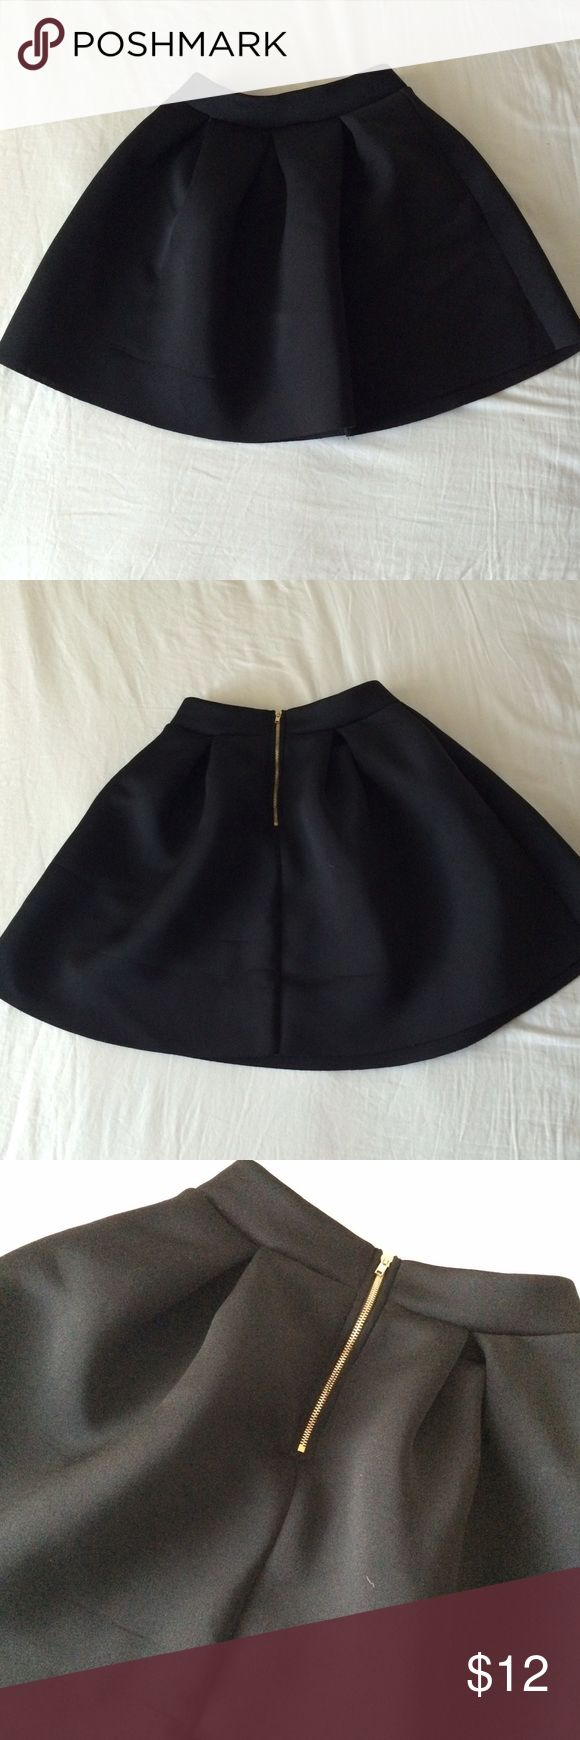 Bubble skater skirt Black bubble skirt. Very bouncy and breathable. Worn once for my speech and debate competition! OFFERS ARE WELCOME! ❤🌻 Charlotte Russe Skirts Circle & Skater